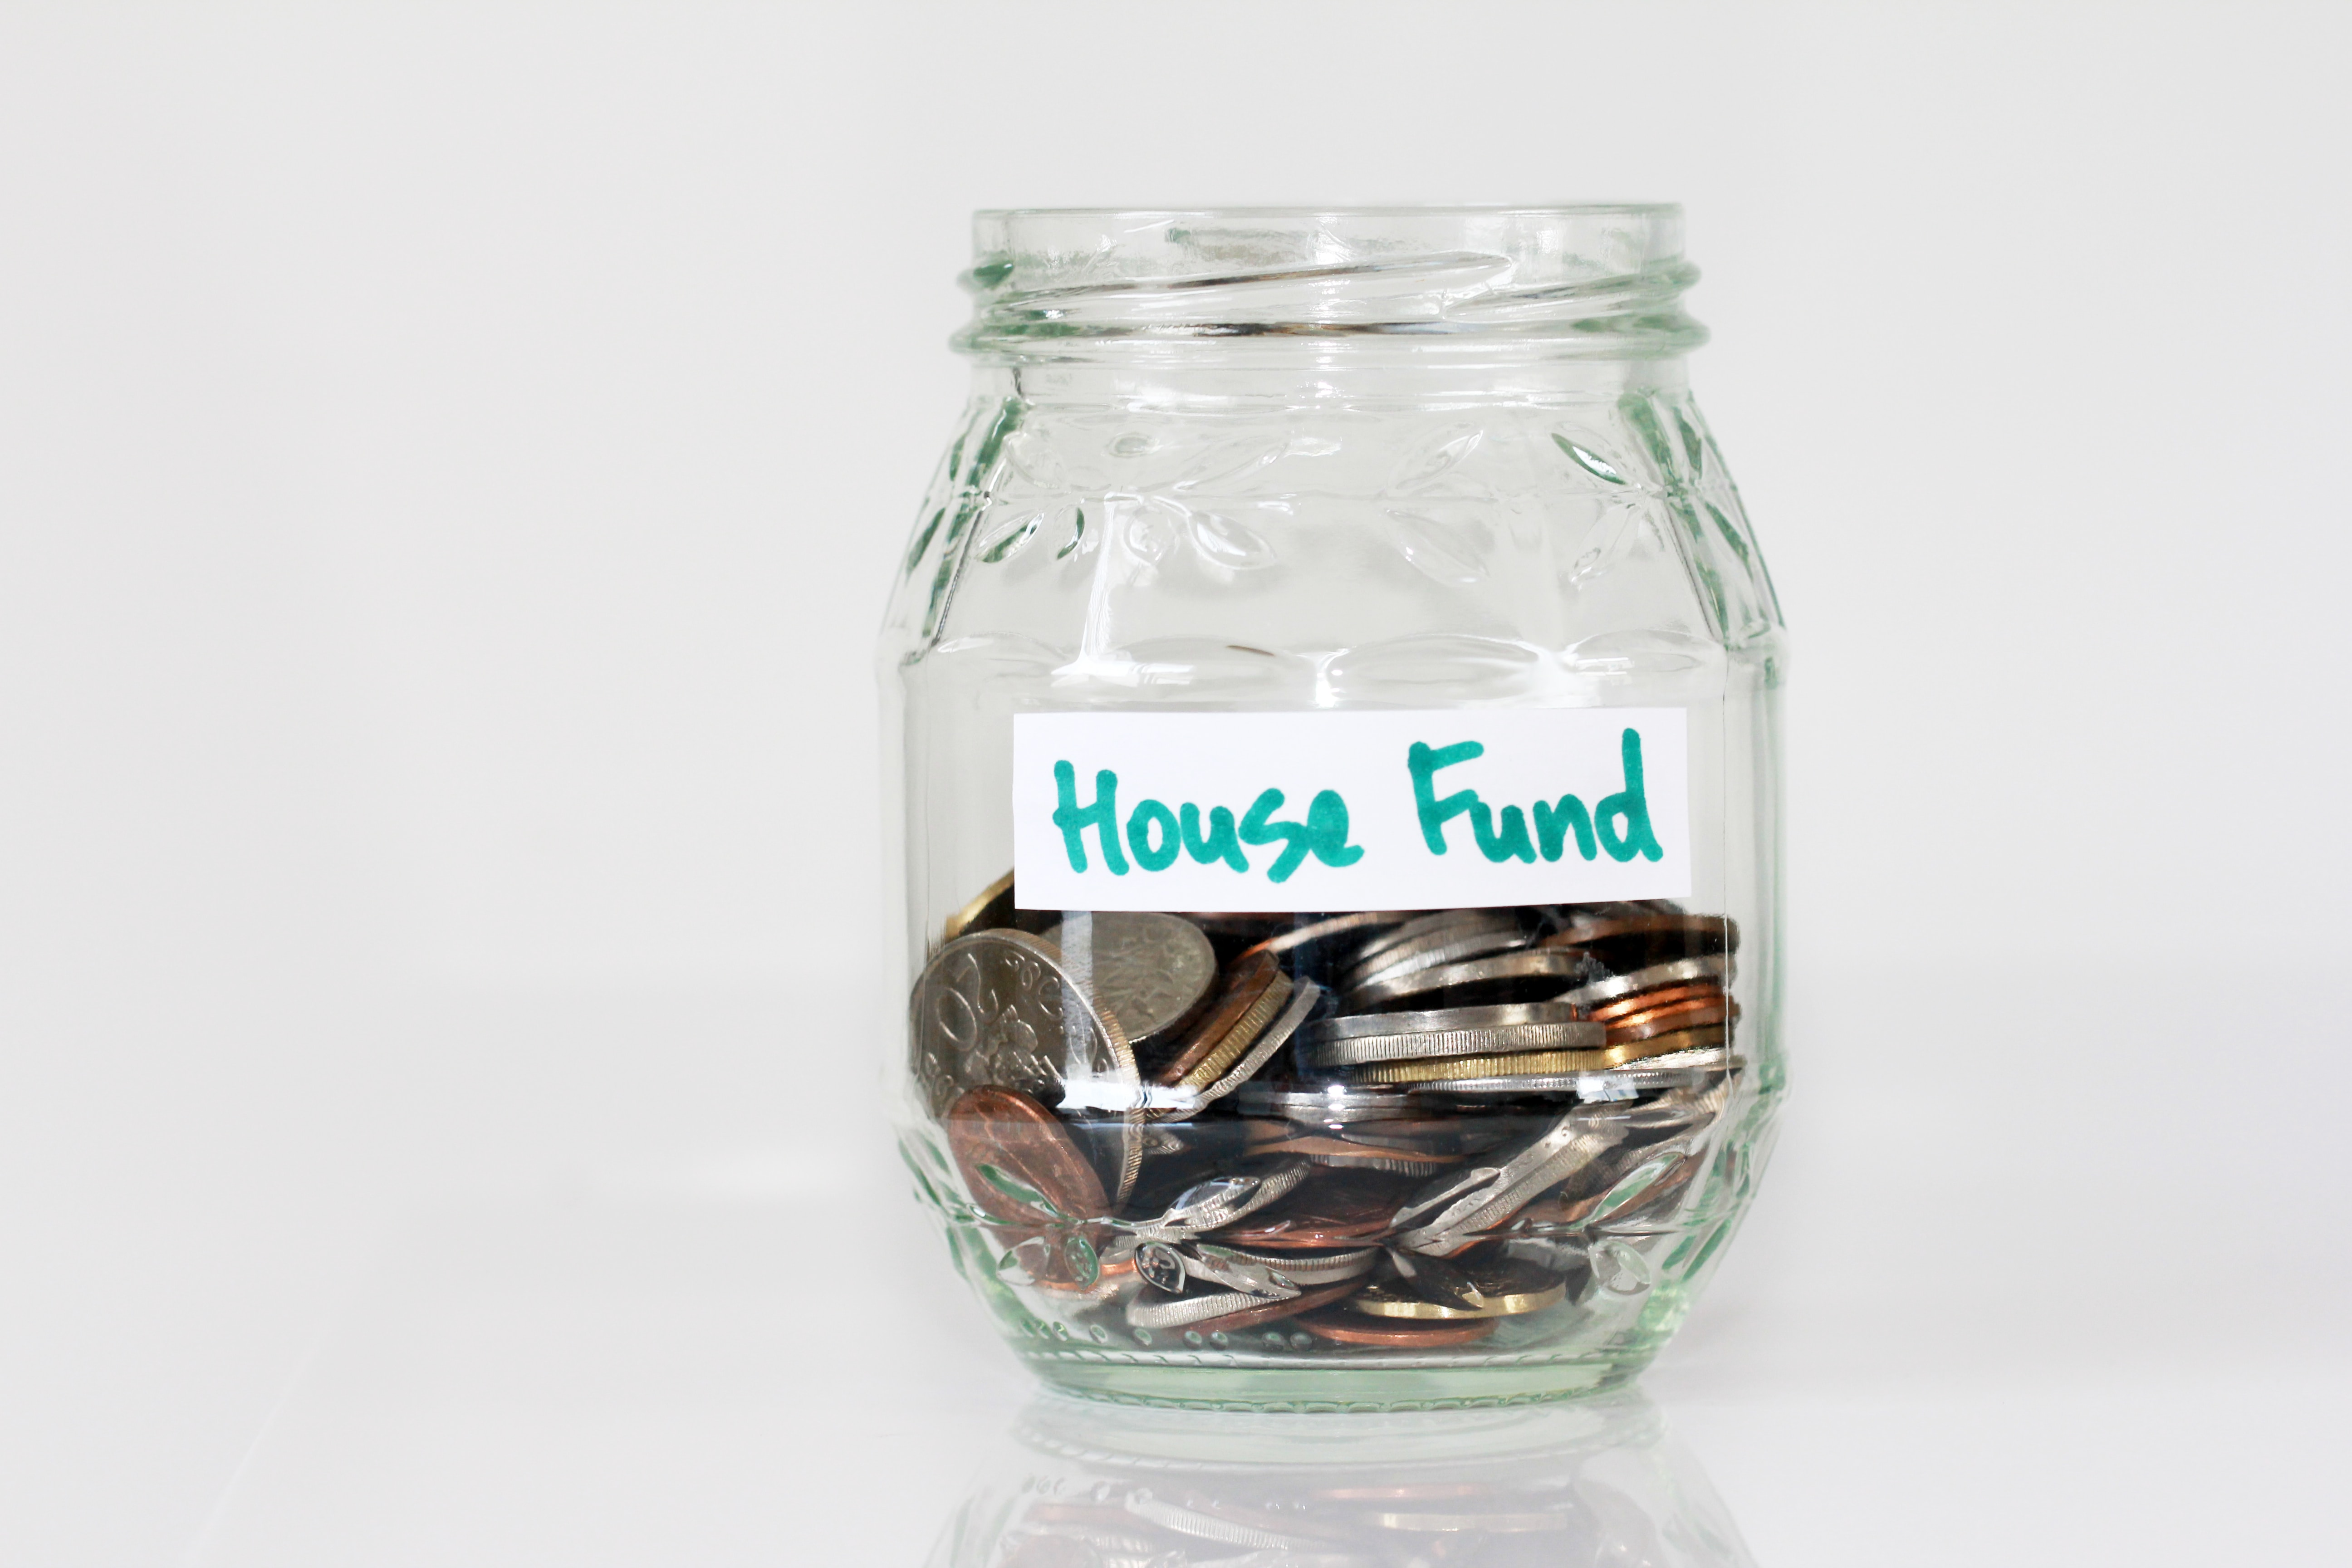 coins in clear glass jar with house fund sign